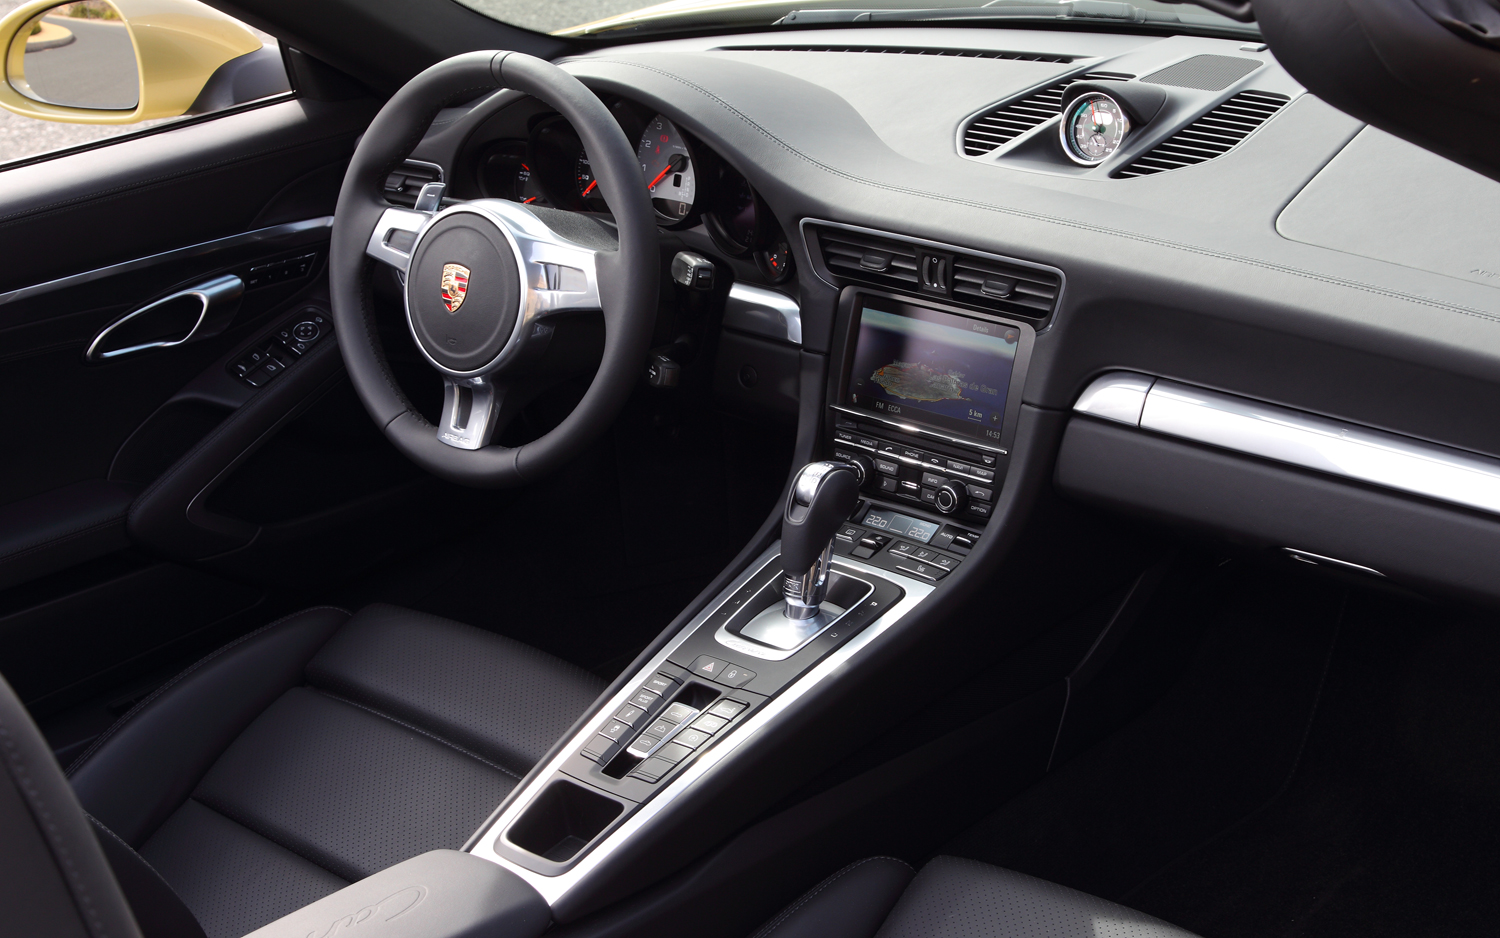 Porsche 911 2018 Interior Dashboard